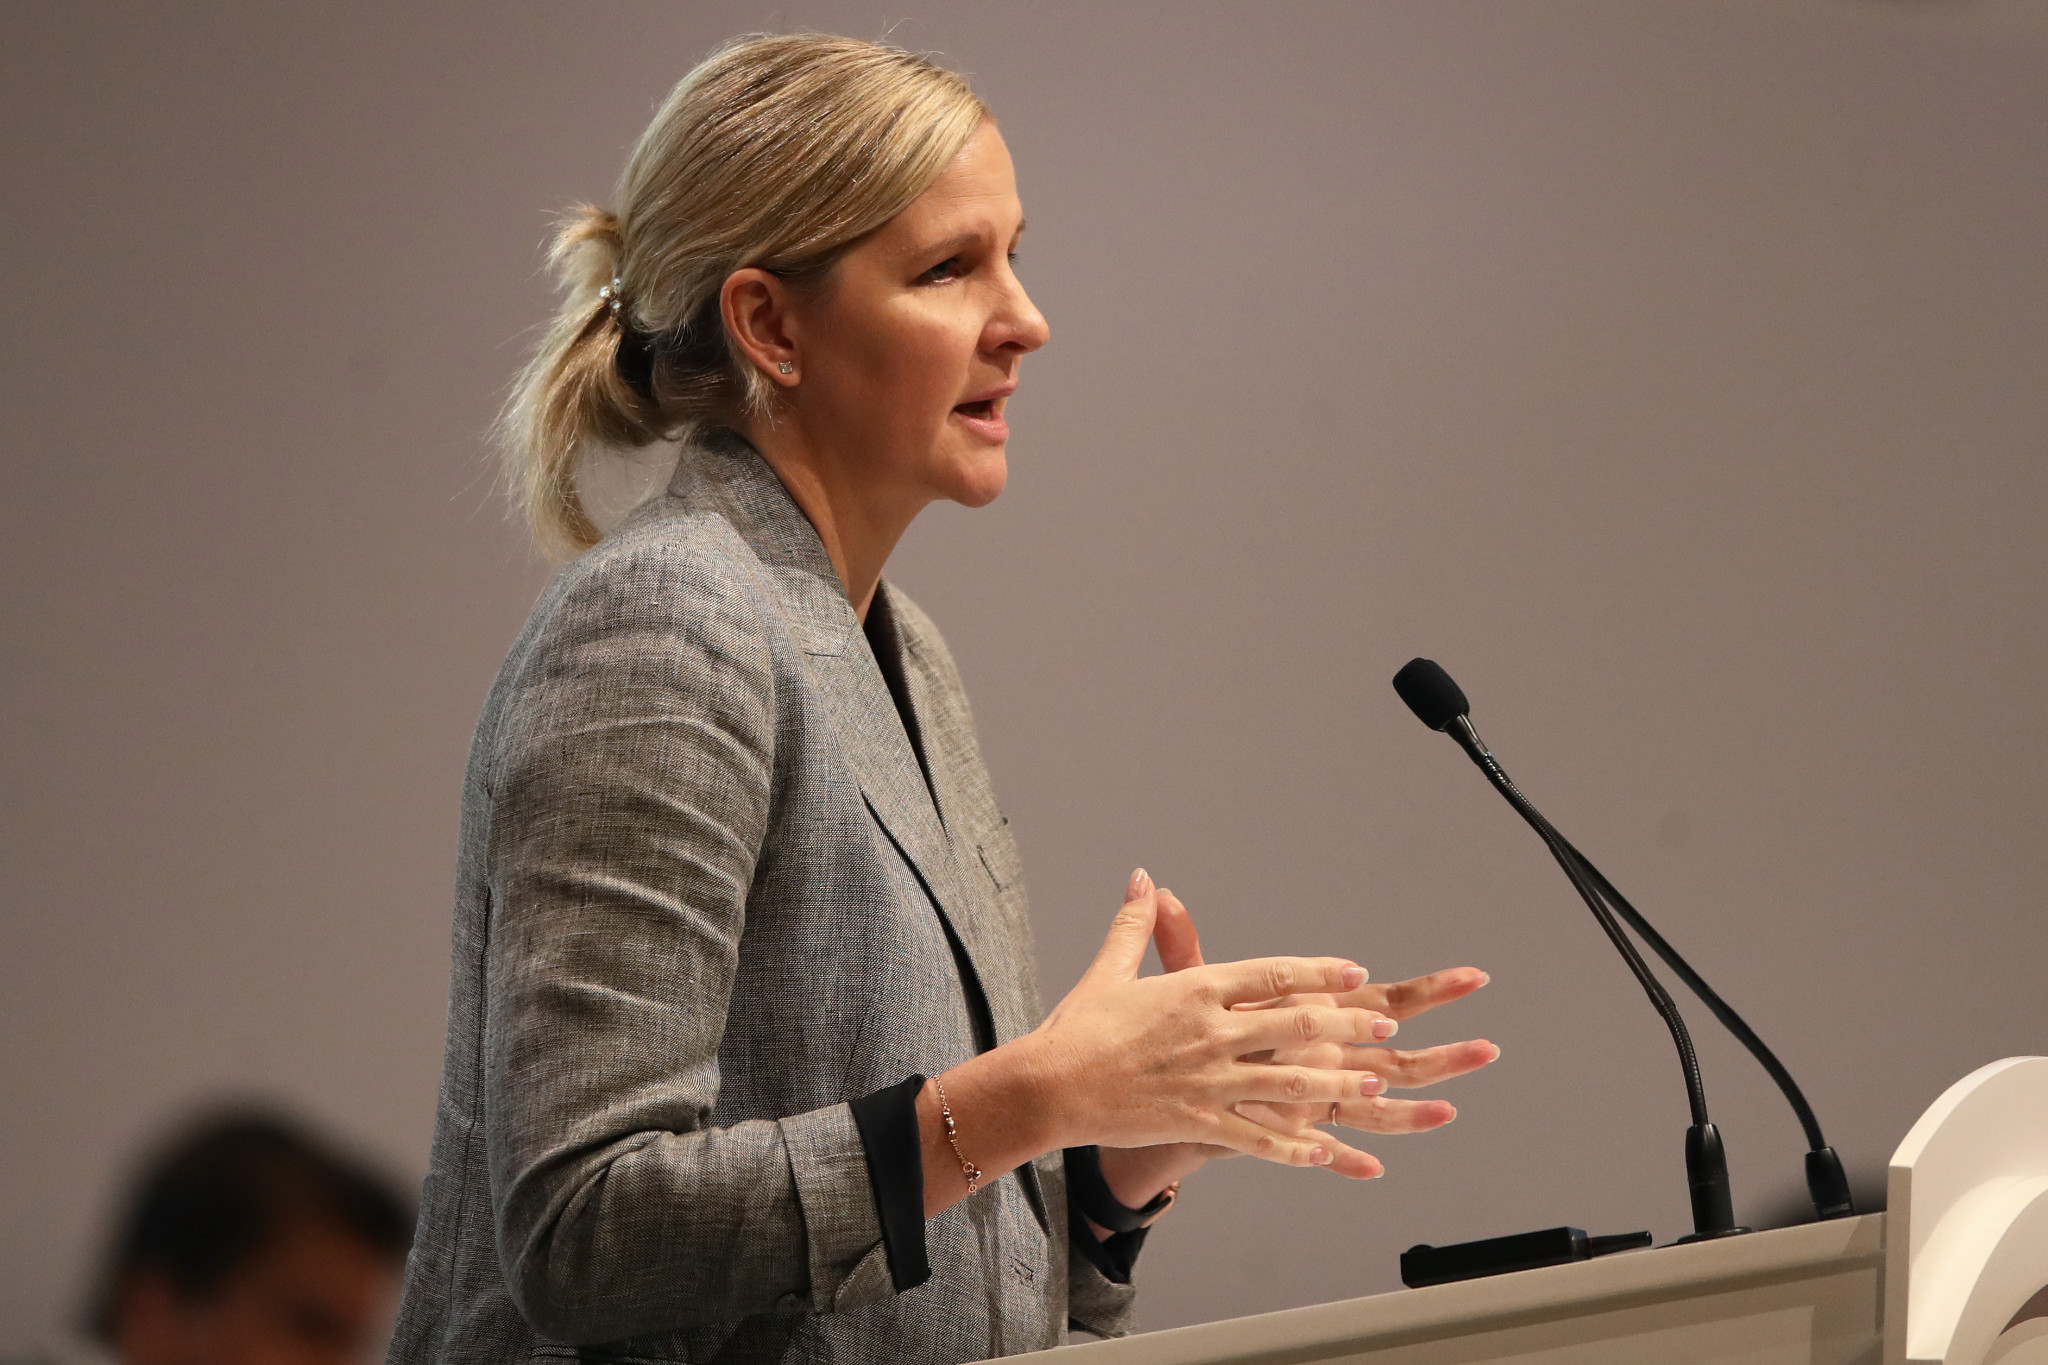 Kirsty Coventry provided an update on preparations for the Summer Youth Olympic Games in Dakar, now taking place in 2026 ©Getty Images